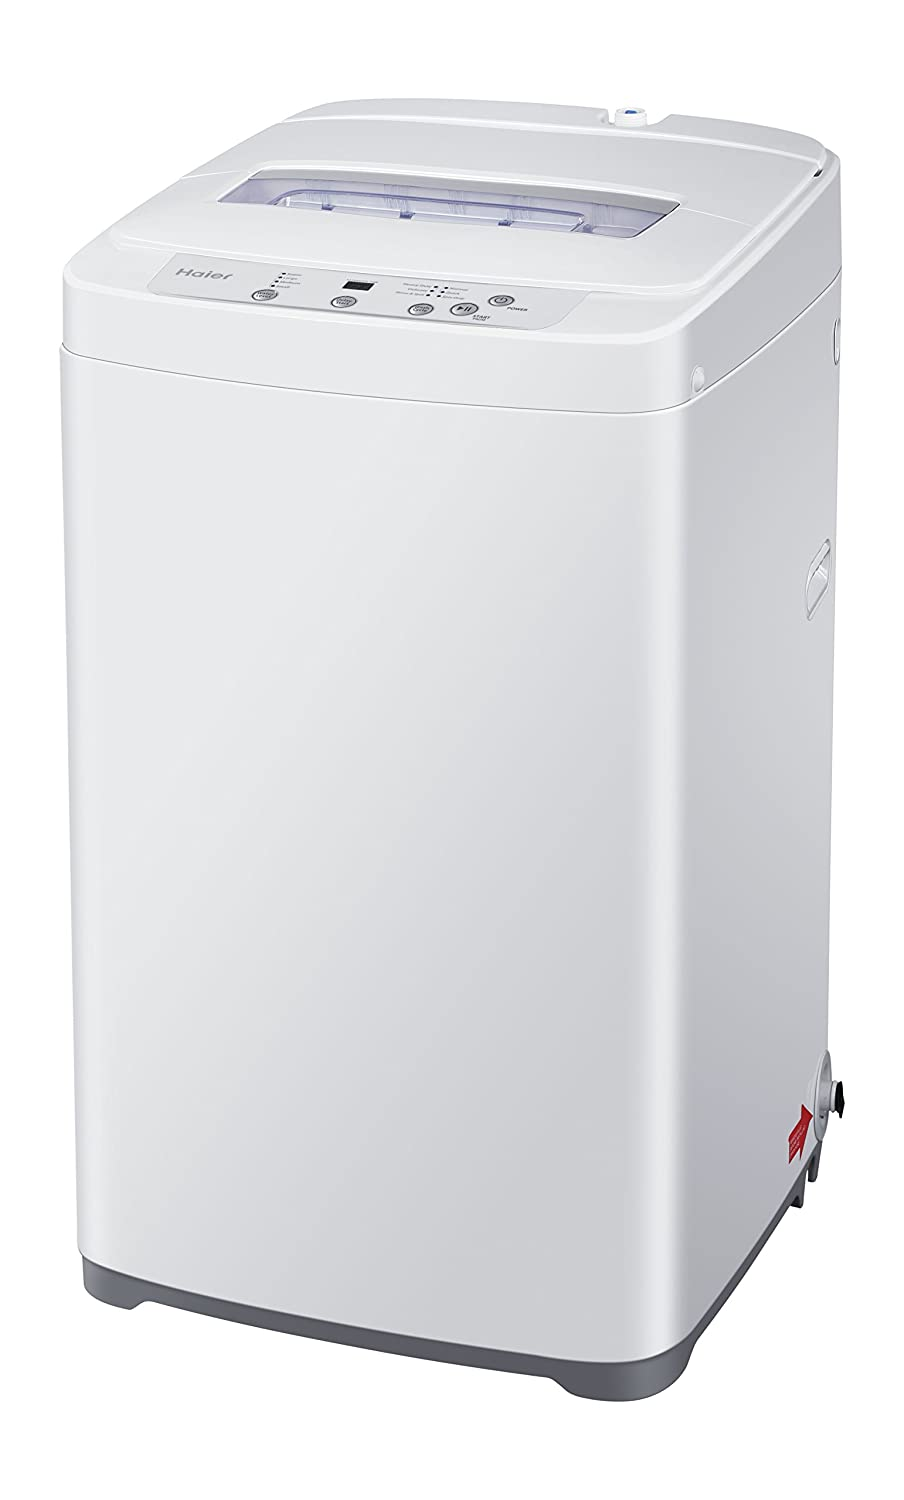 Amazon.com: Haier HLP24E 1.5 Cu. Ft. Portable Washer With Stainless Steel  Drum And Pulsator Wash System: Appliances